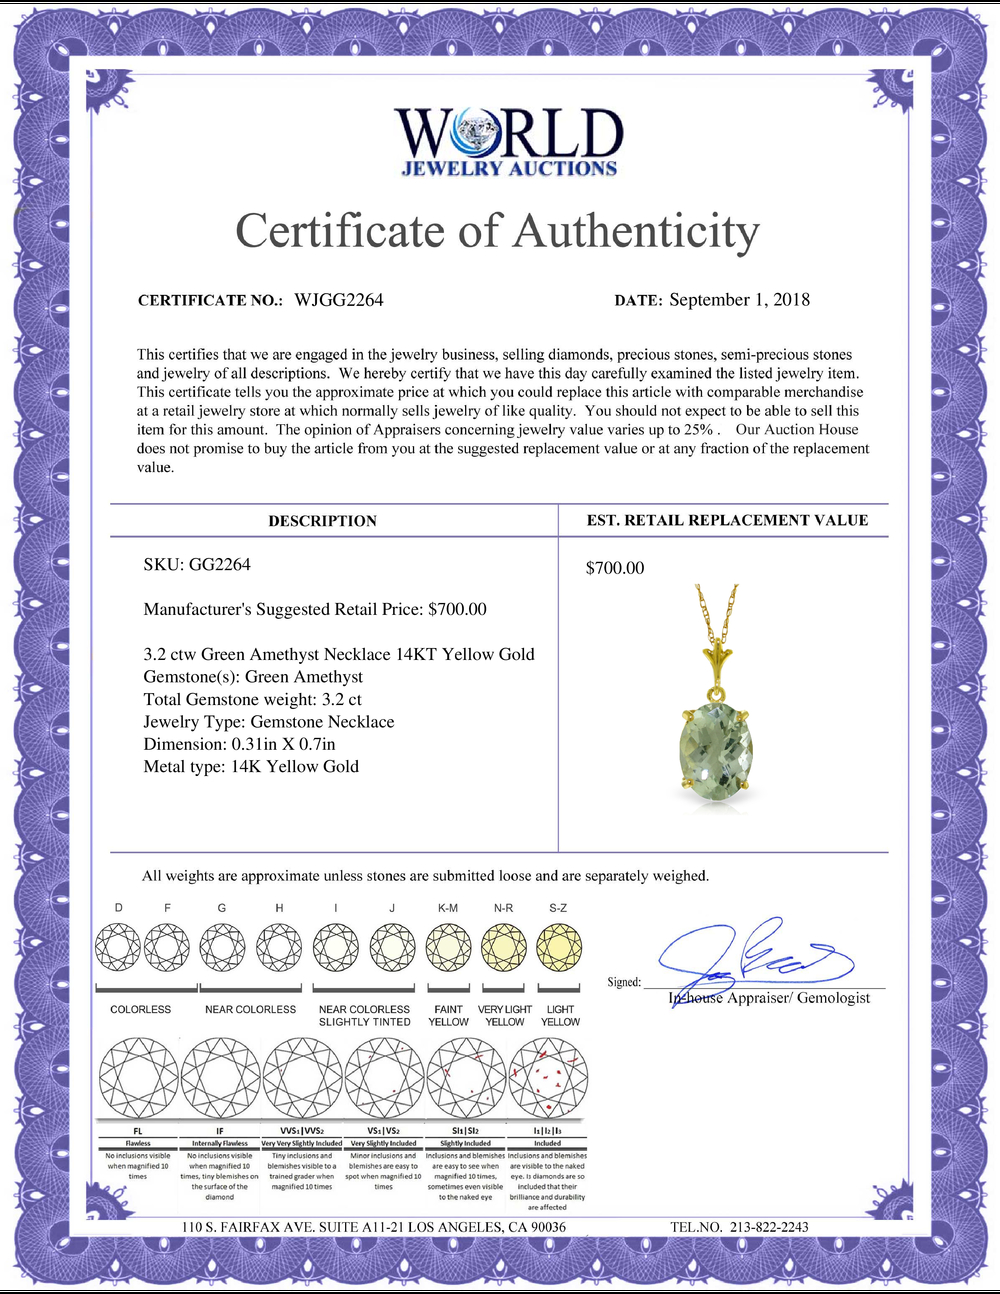 Lot 3144: Genuine 3.2 ctw Green Amethyst Necklace Jewelry 14KT Yellow Gold - REF-20W4Y